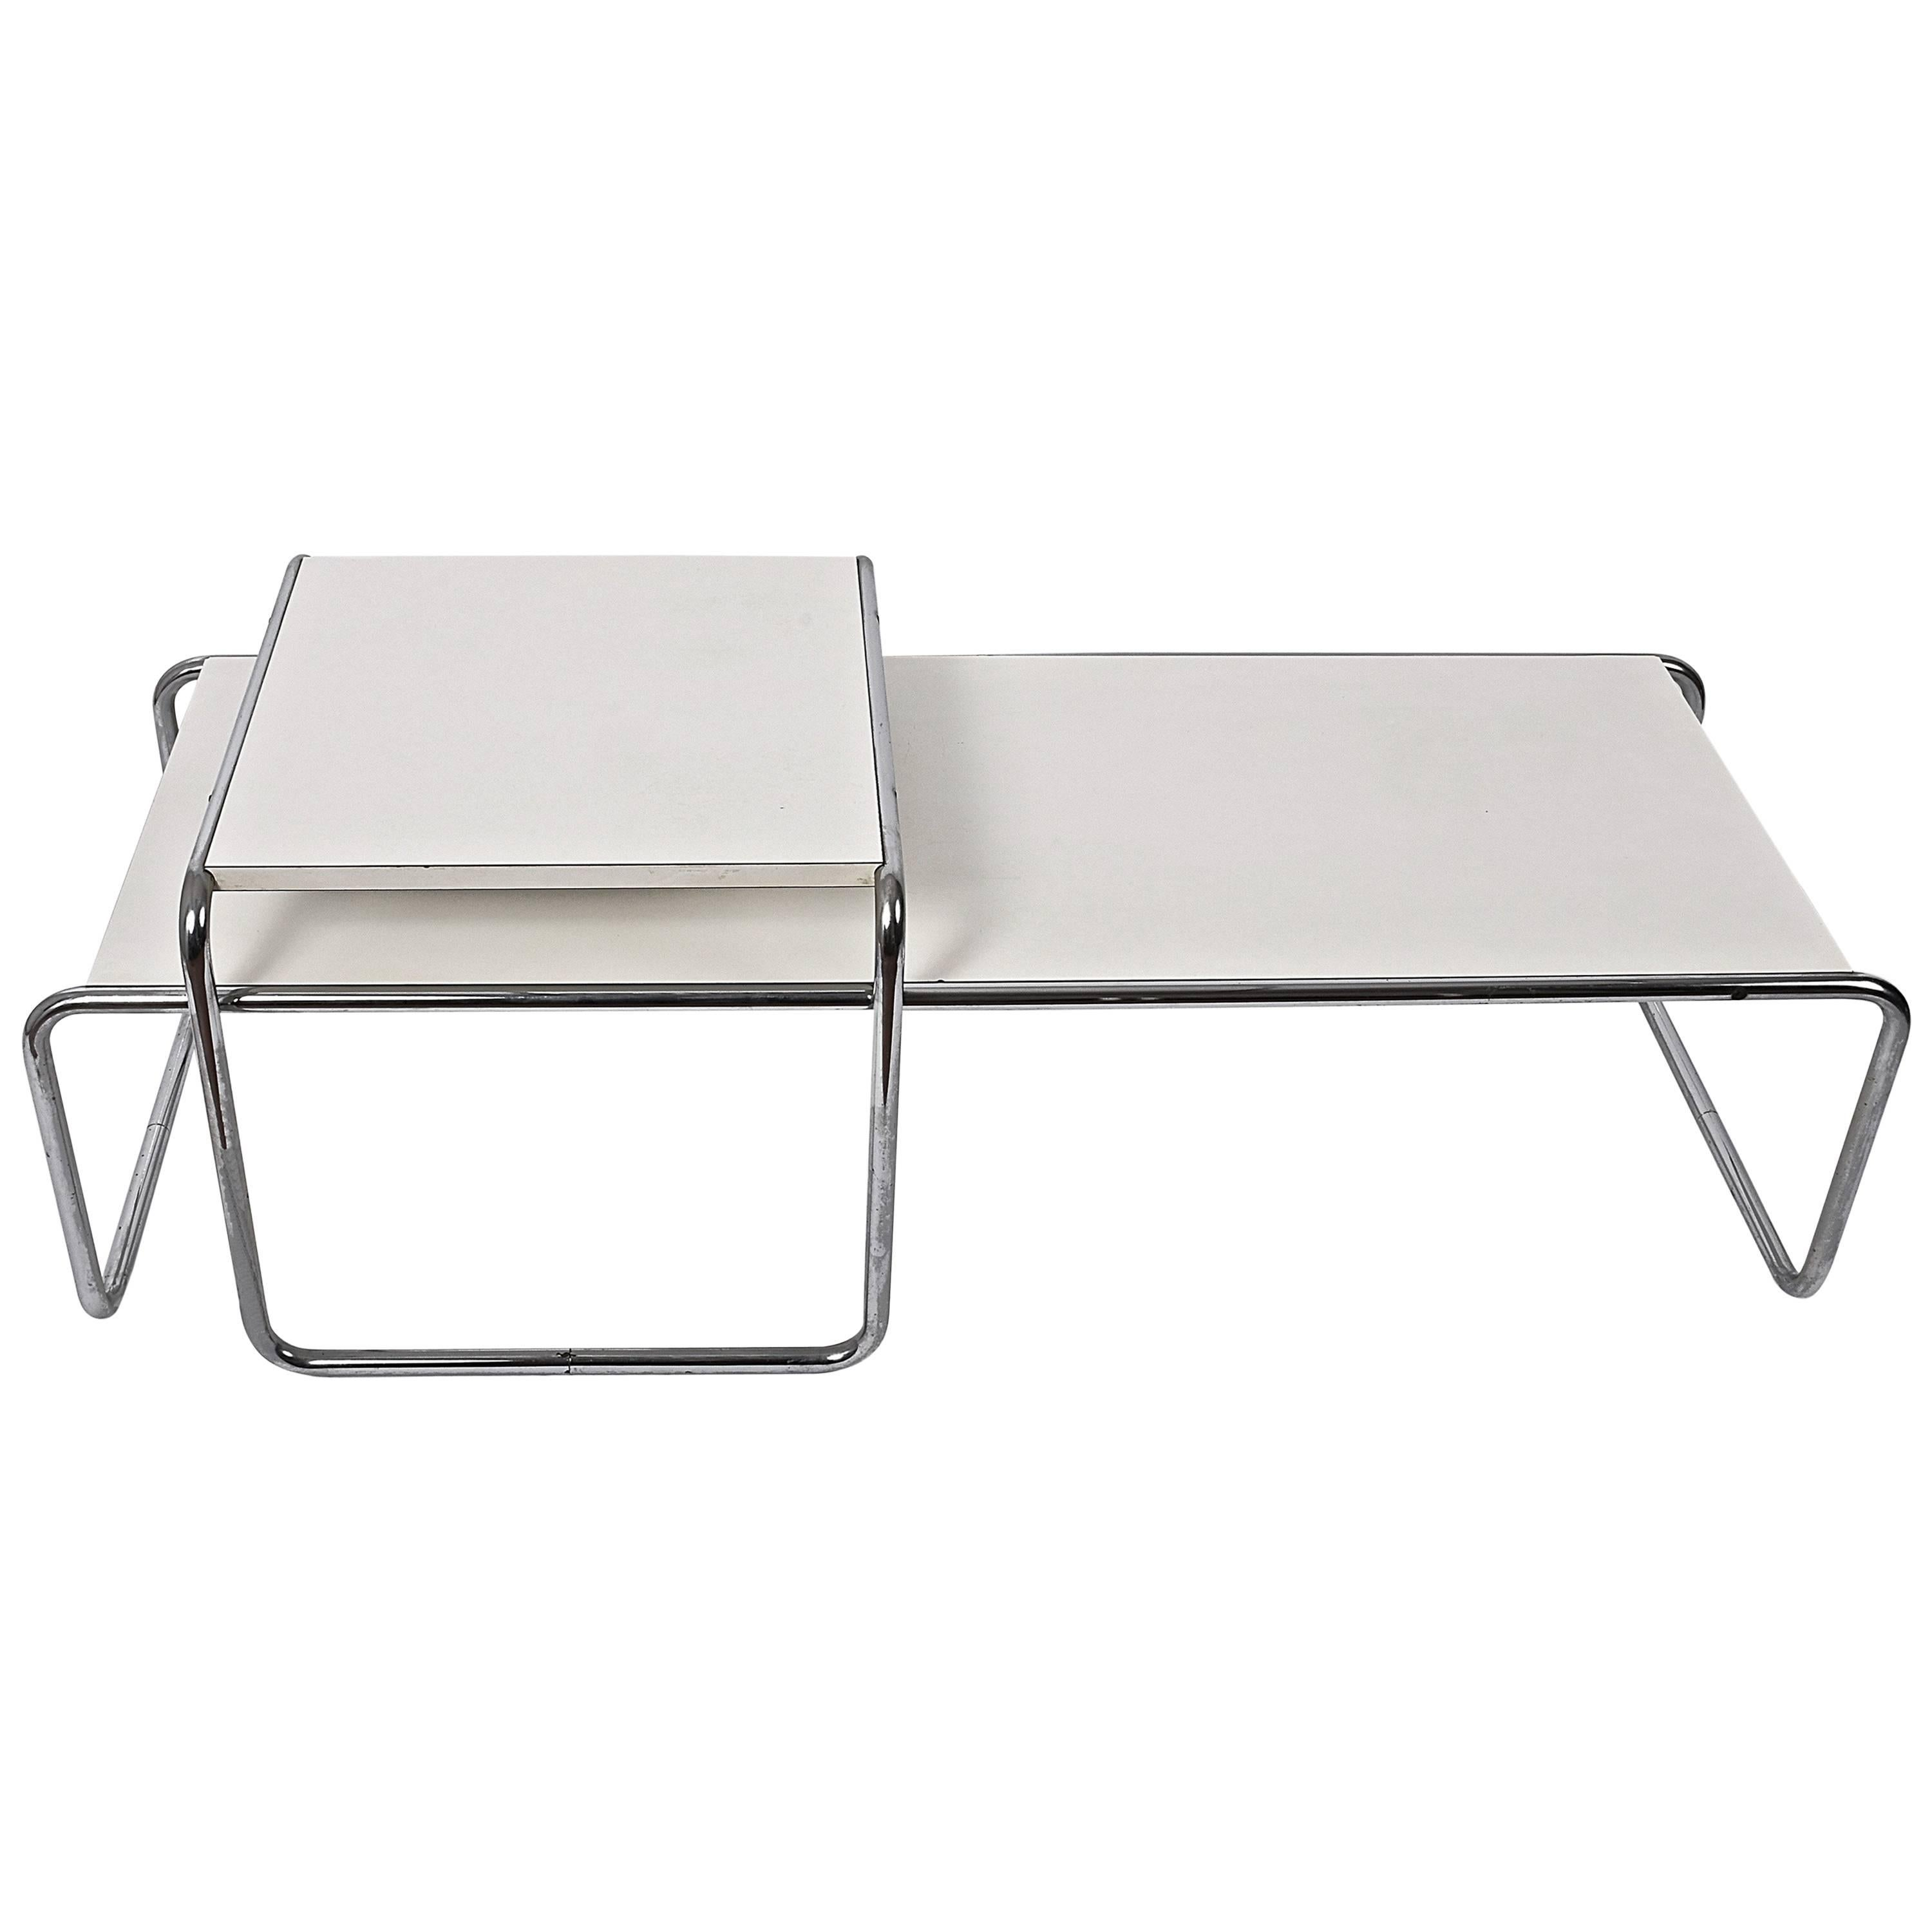 Marcel Breuer White Laminated Wood And Steel U0027Lacciou0027 Side Table, Bauhaus